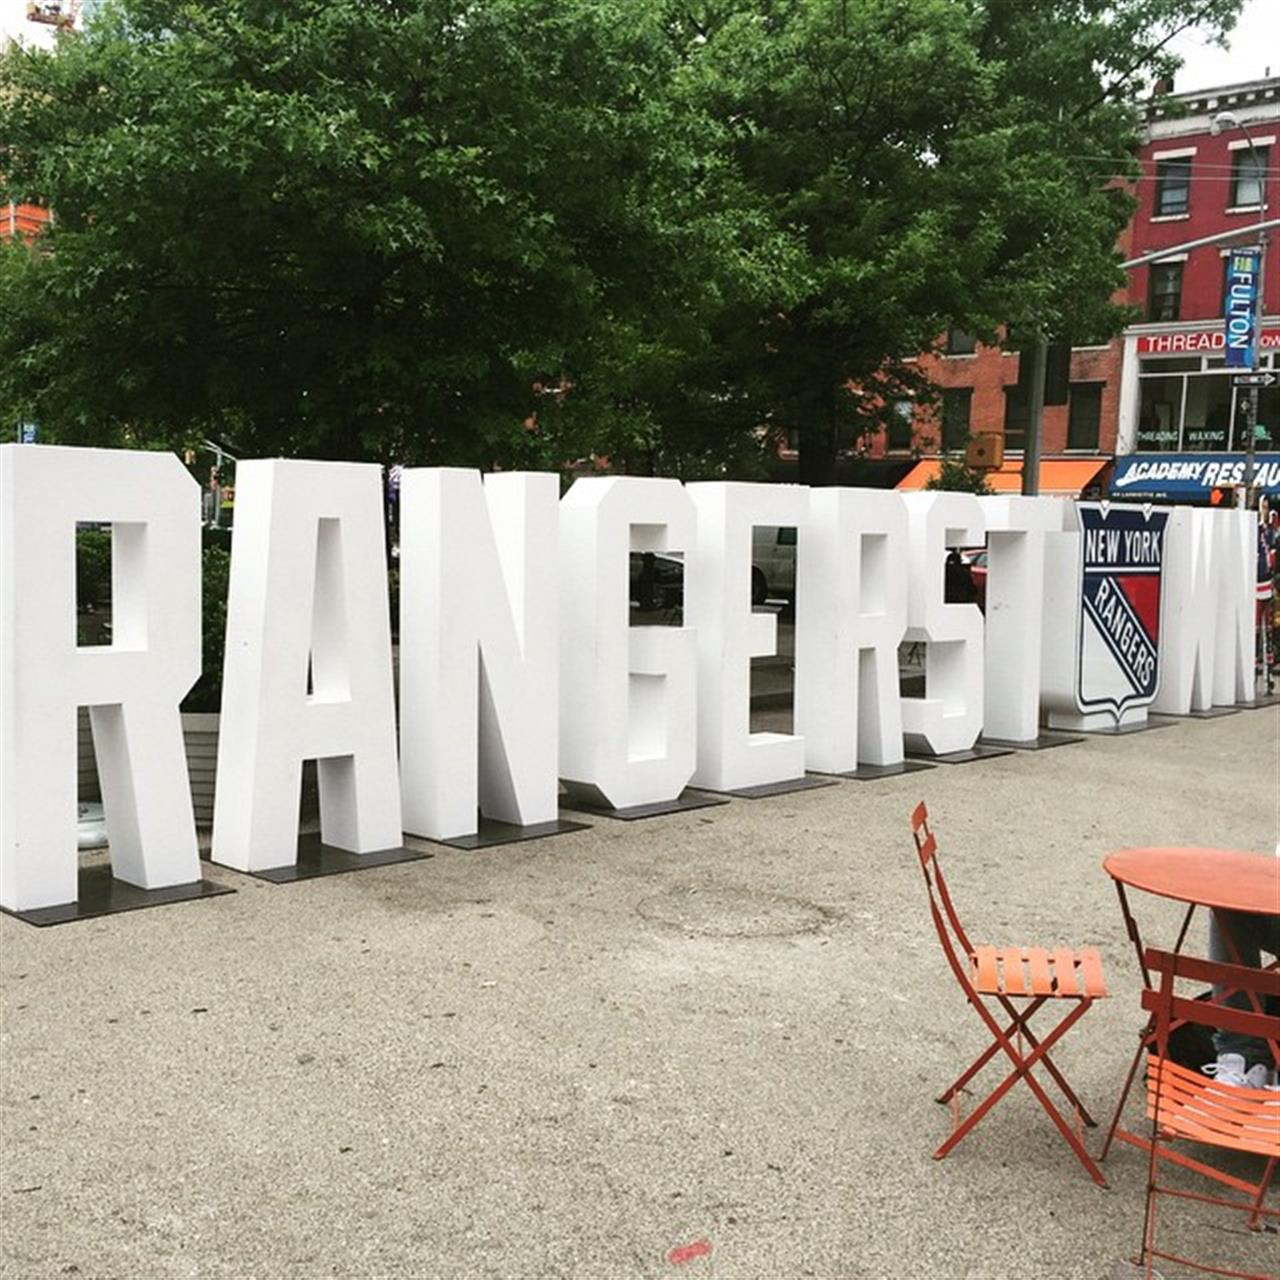 Fort Greene loves the #Rangers !! This #rangerstown display is right outside my office! #LGR #BROOKLYN #fultonstreet #leadingRElocal